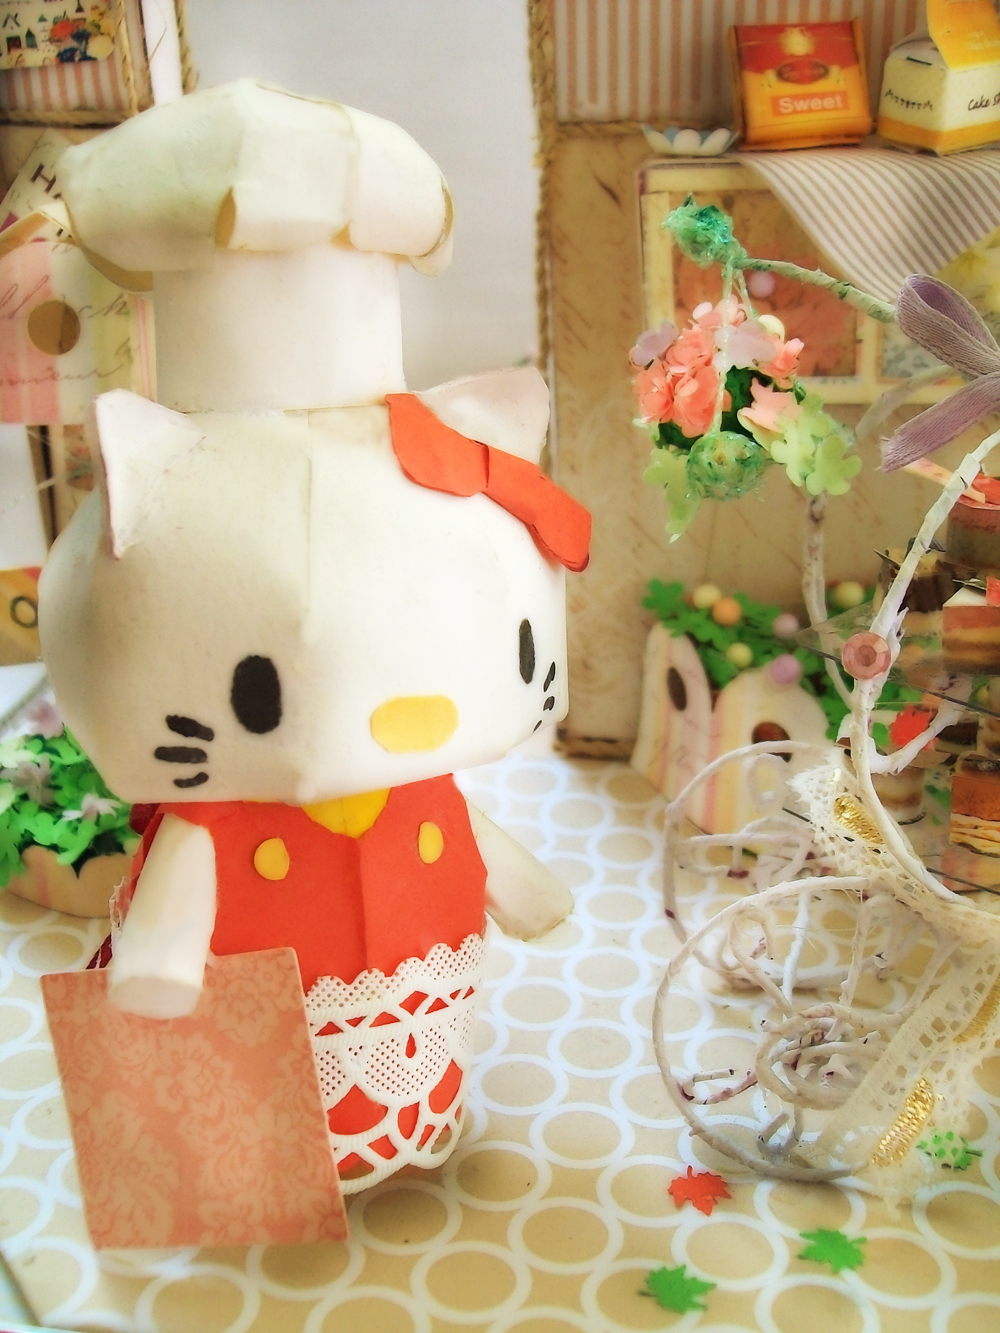 Adorable Cafe part 1 (Hello Kitty) by Vissyscrafts